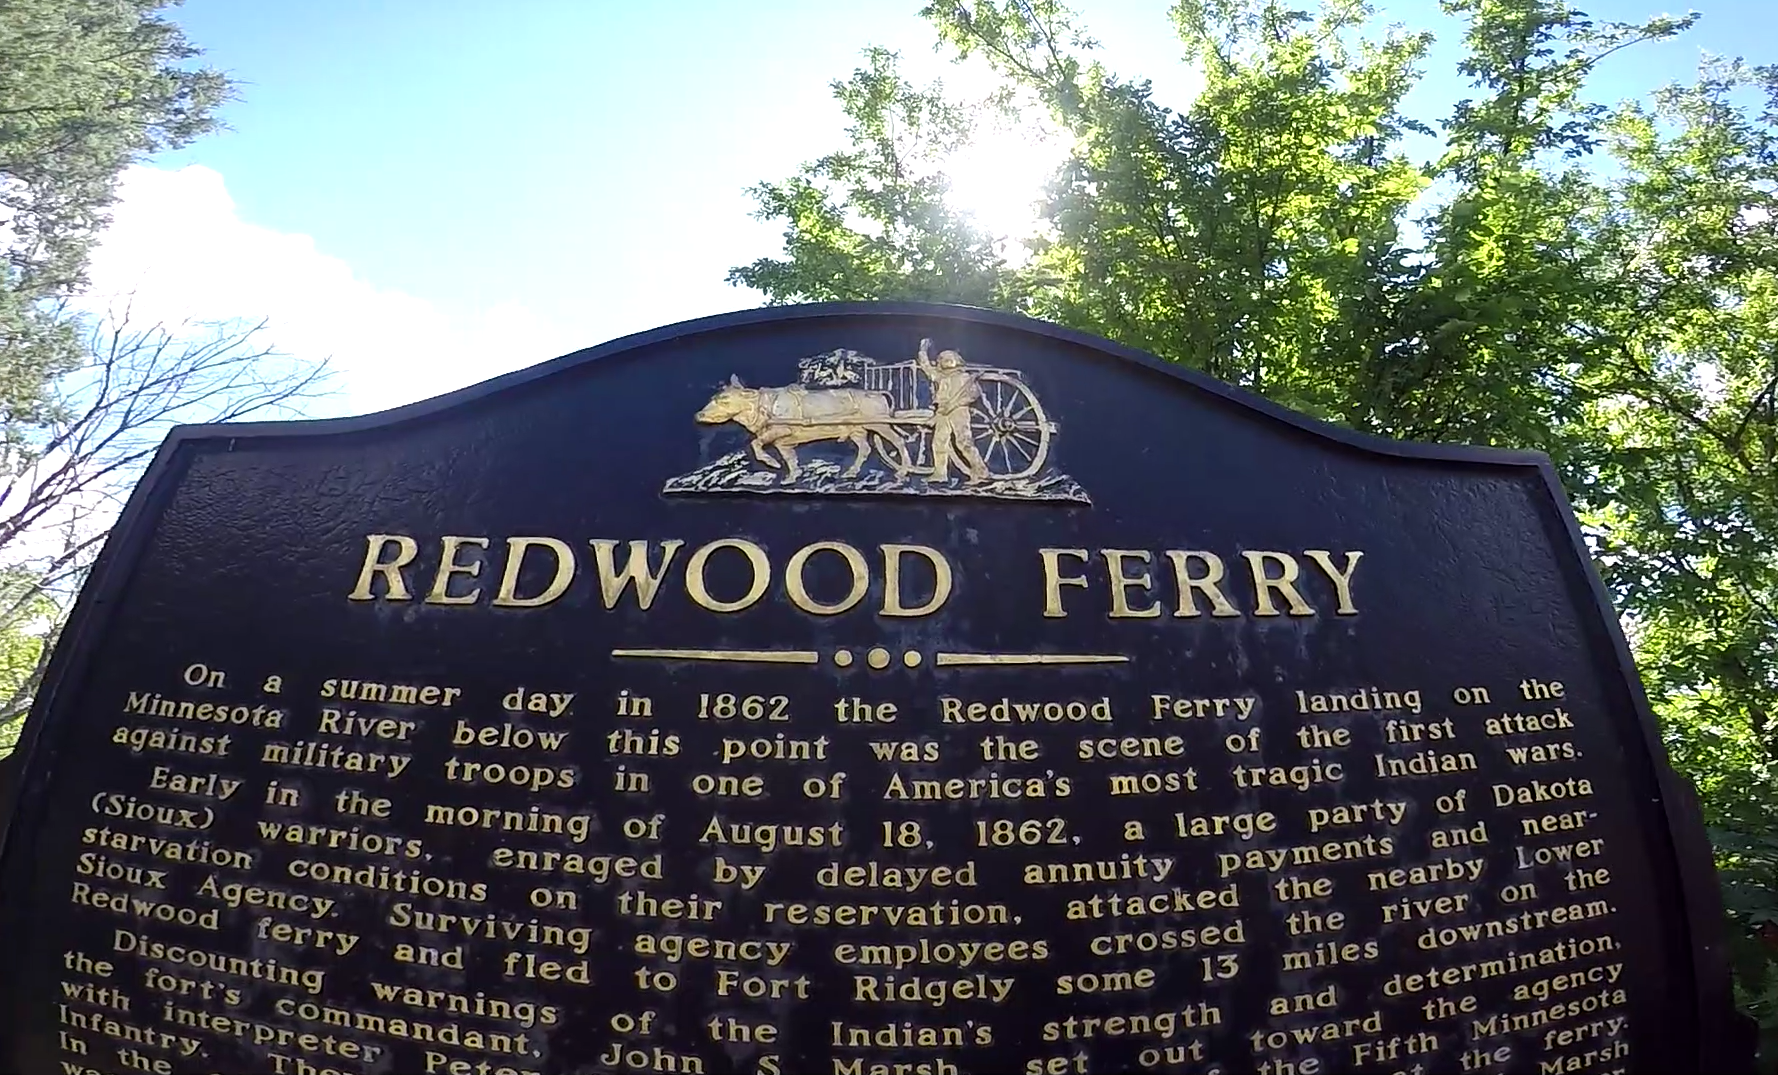 The ferry was where many Minnesotans attempted to cross the Minnesotan river to escape the violence at the Lower Sioux Agency. Instead they ran into an ambush.